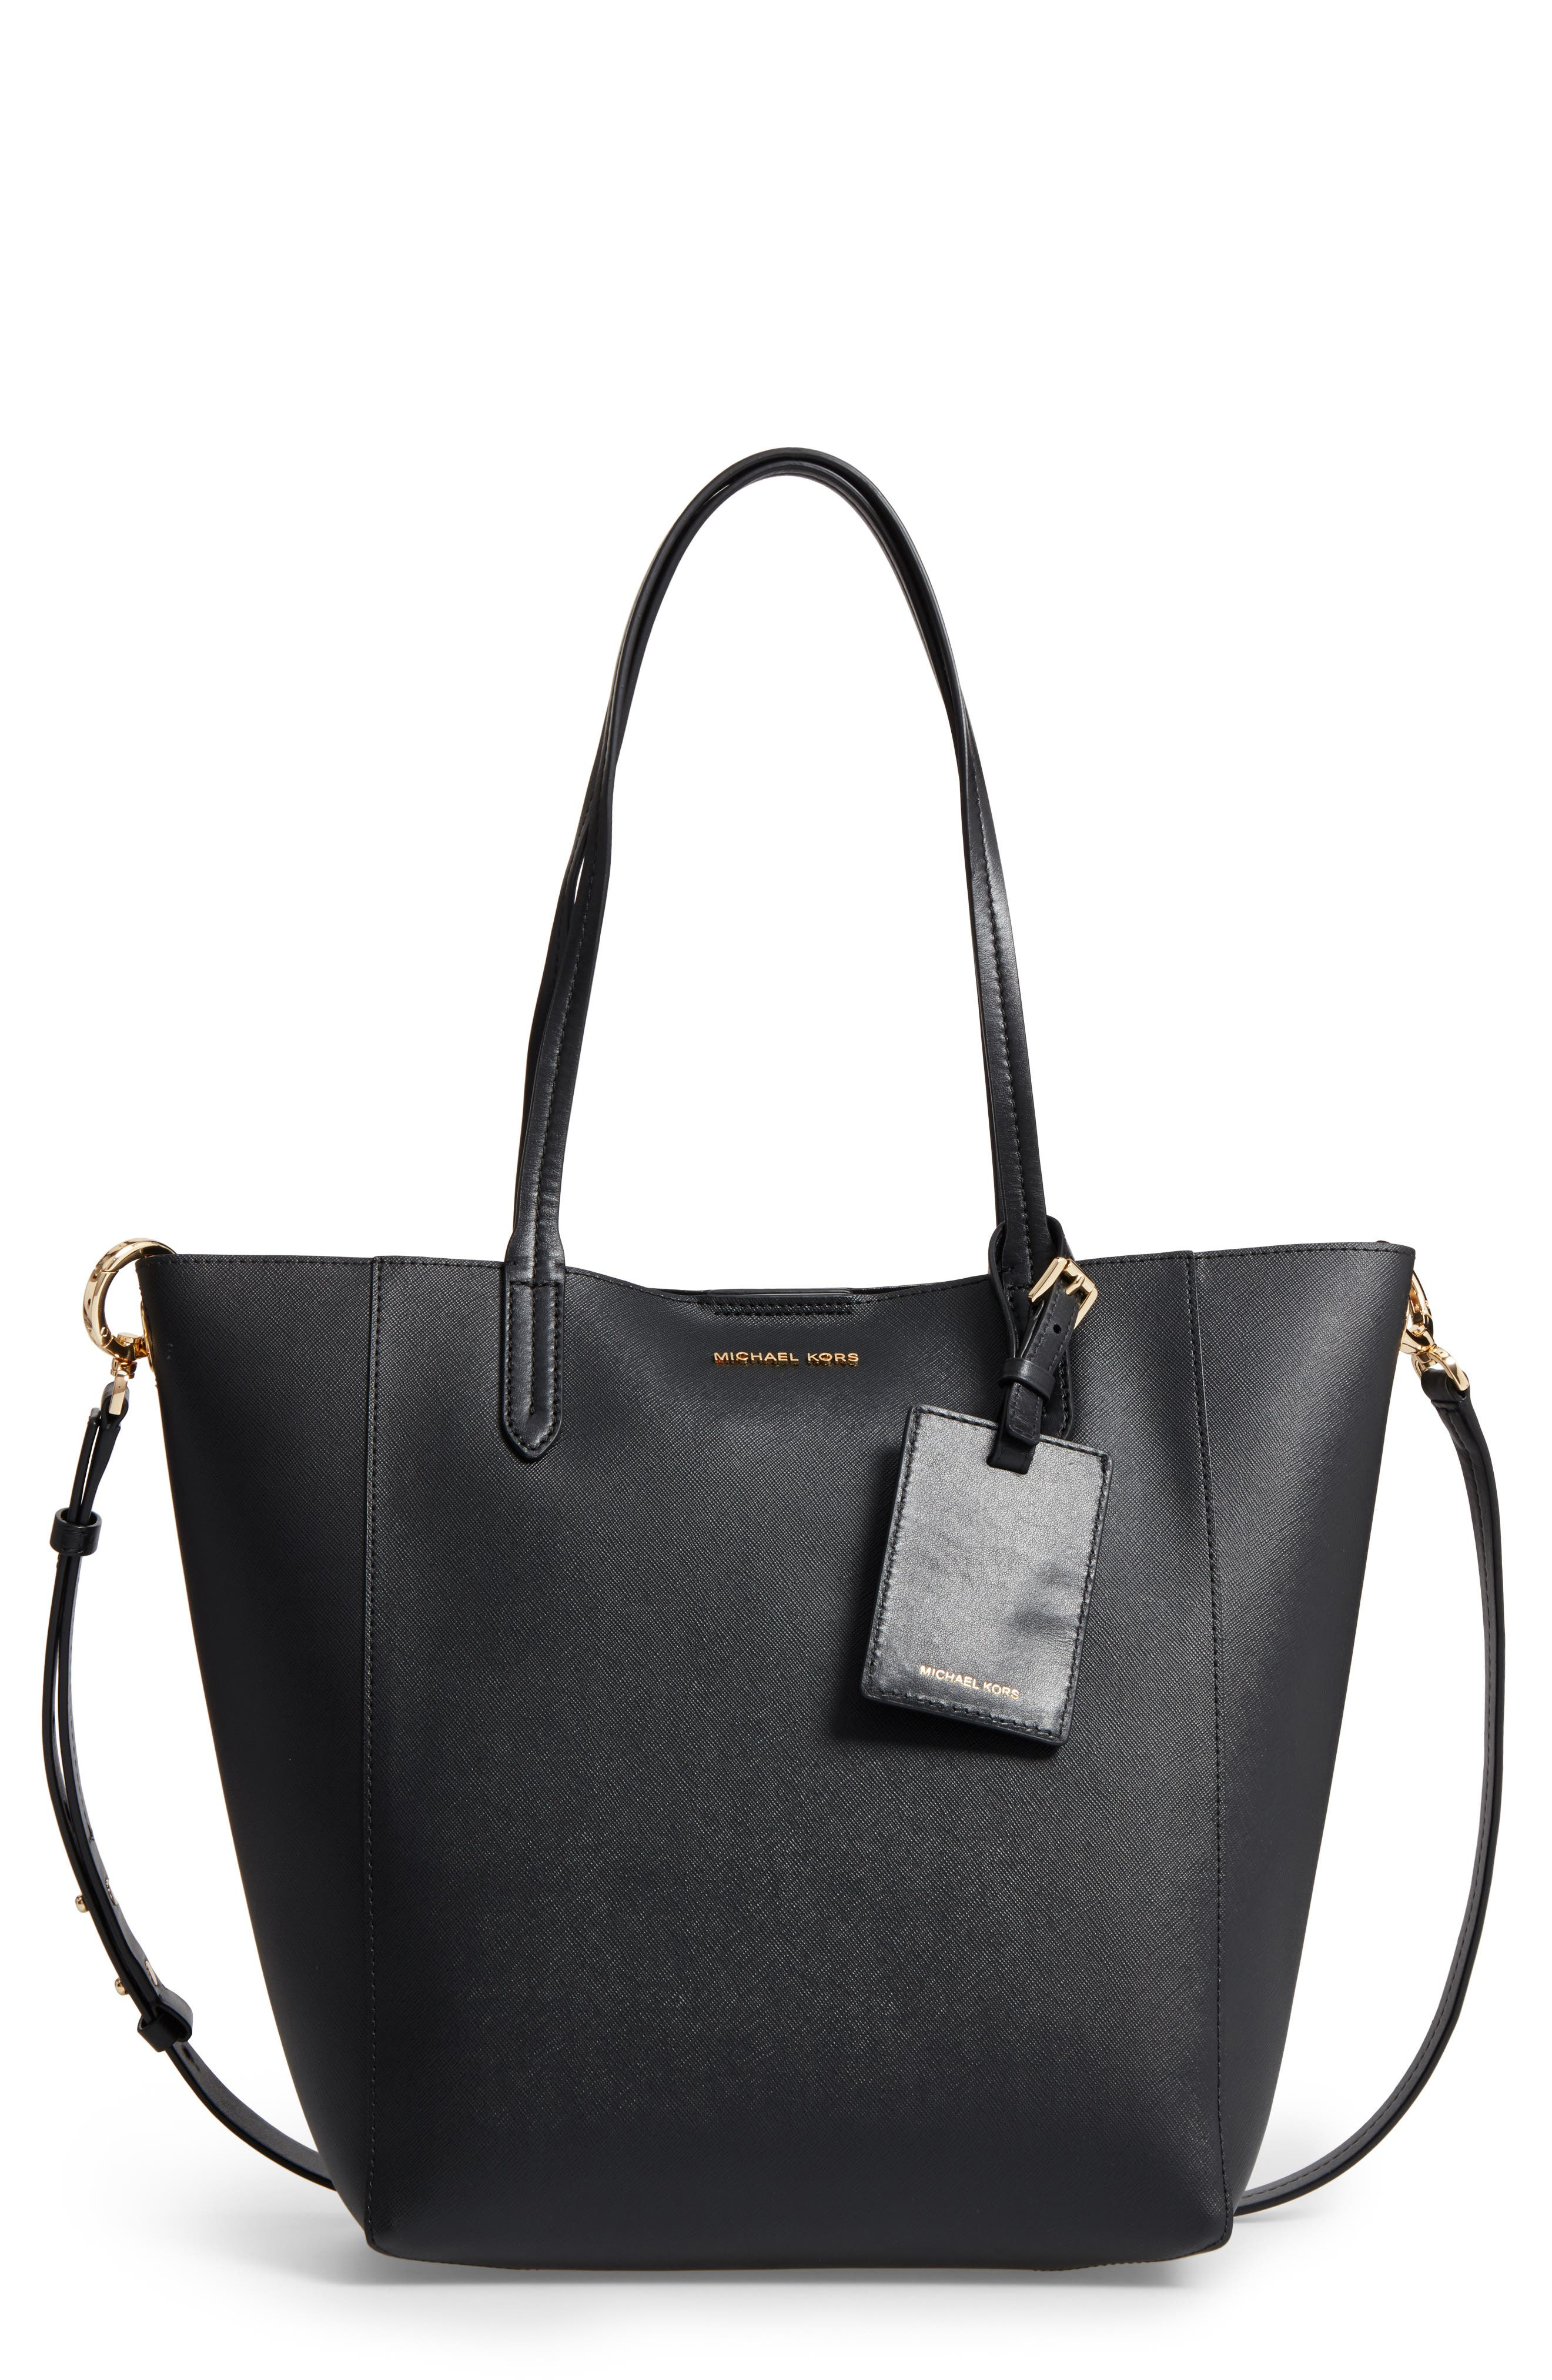 Alternate Image 1 Selected - MICHAEL Michael Kors Penny Large Saffiano Convertible Leather Tote